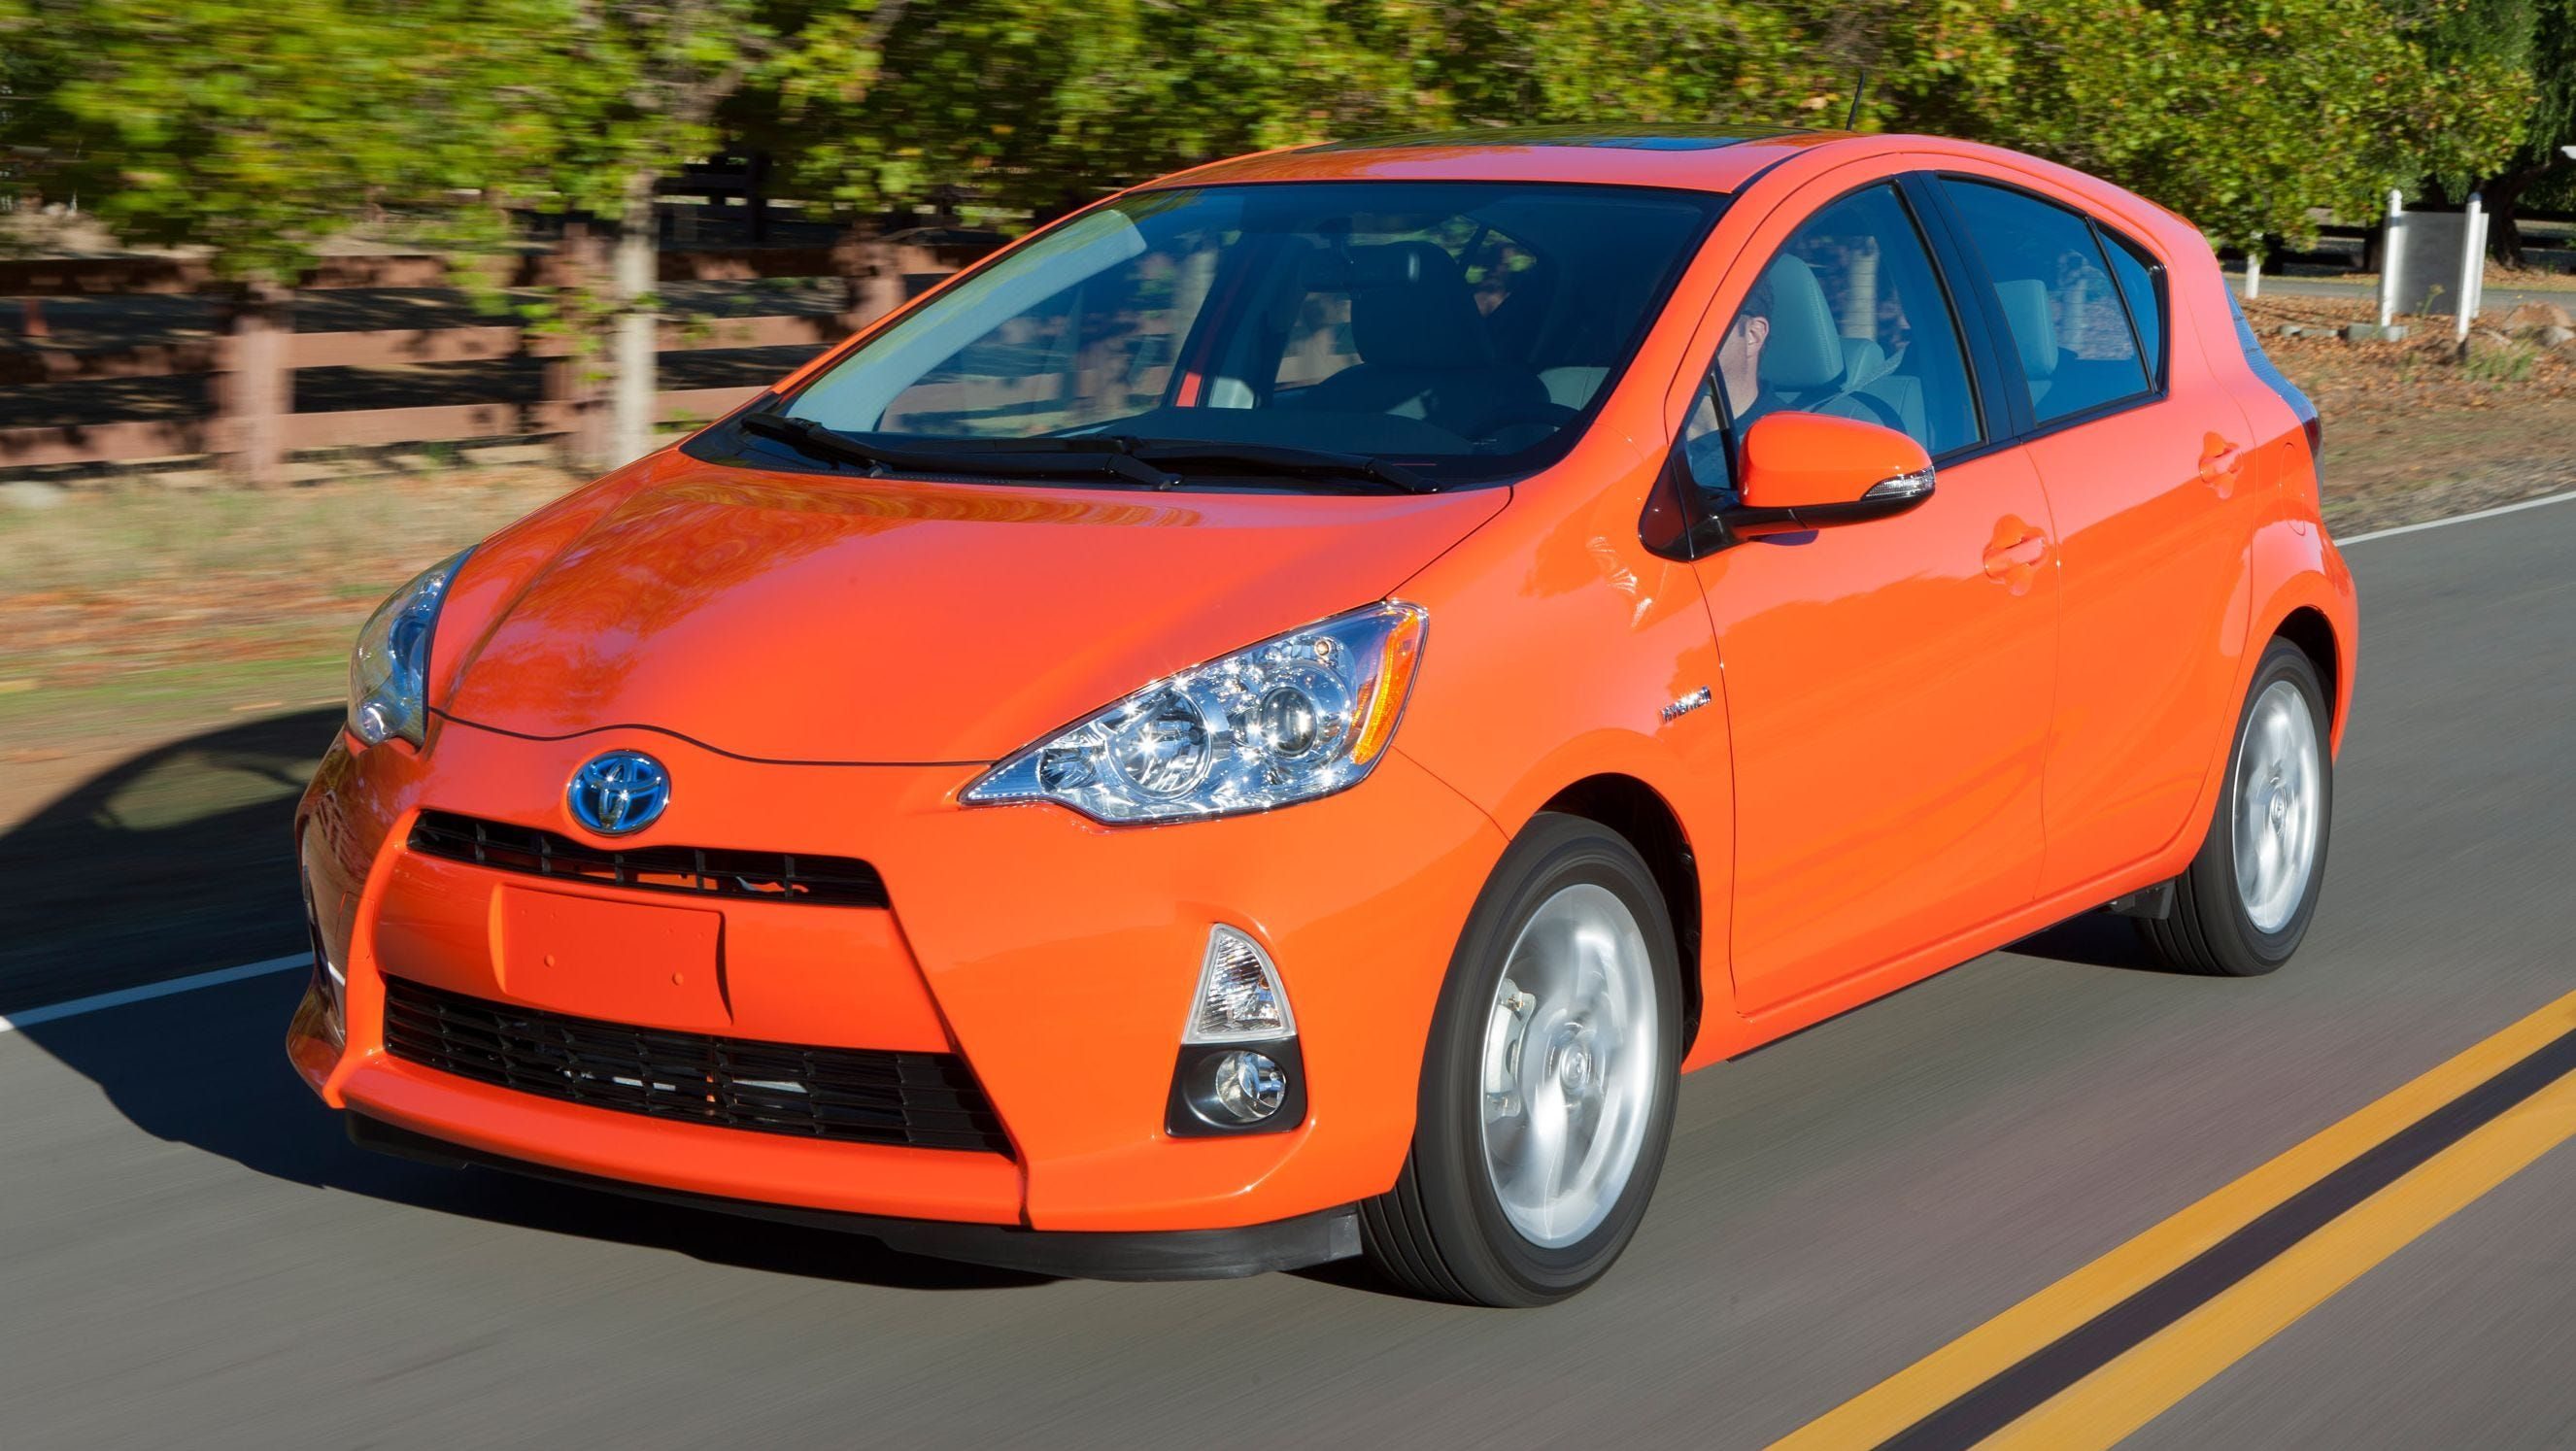 These 9 Cars Will Be Killed In 2020 Chevrolet Ford Fiat Vehicles Are Saying Goodbye Vehicles Classic Cars Toyota